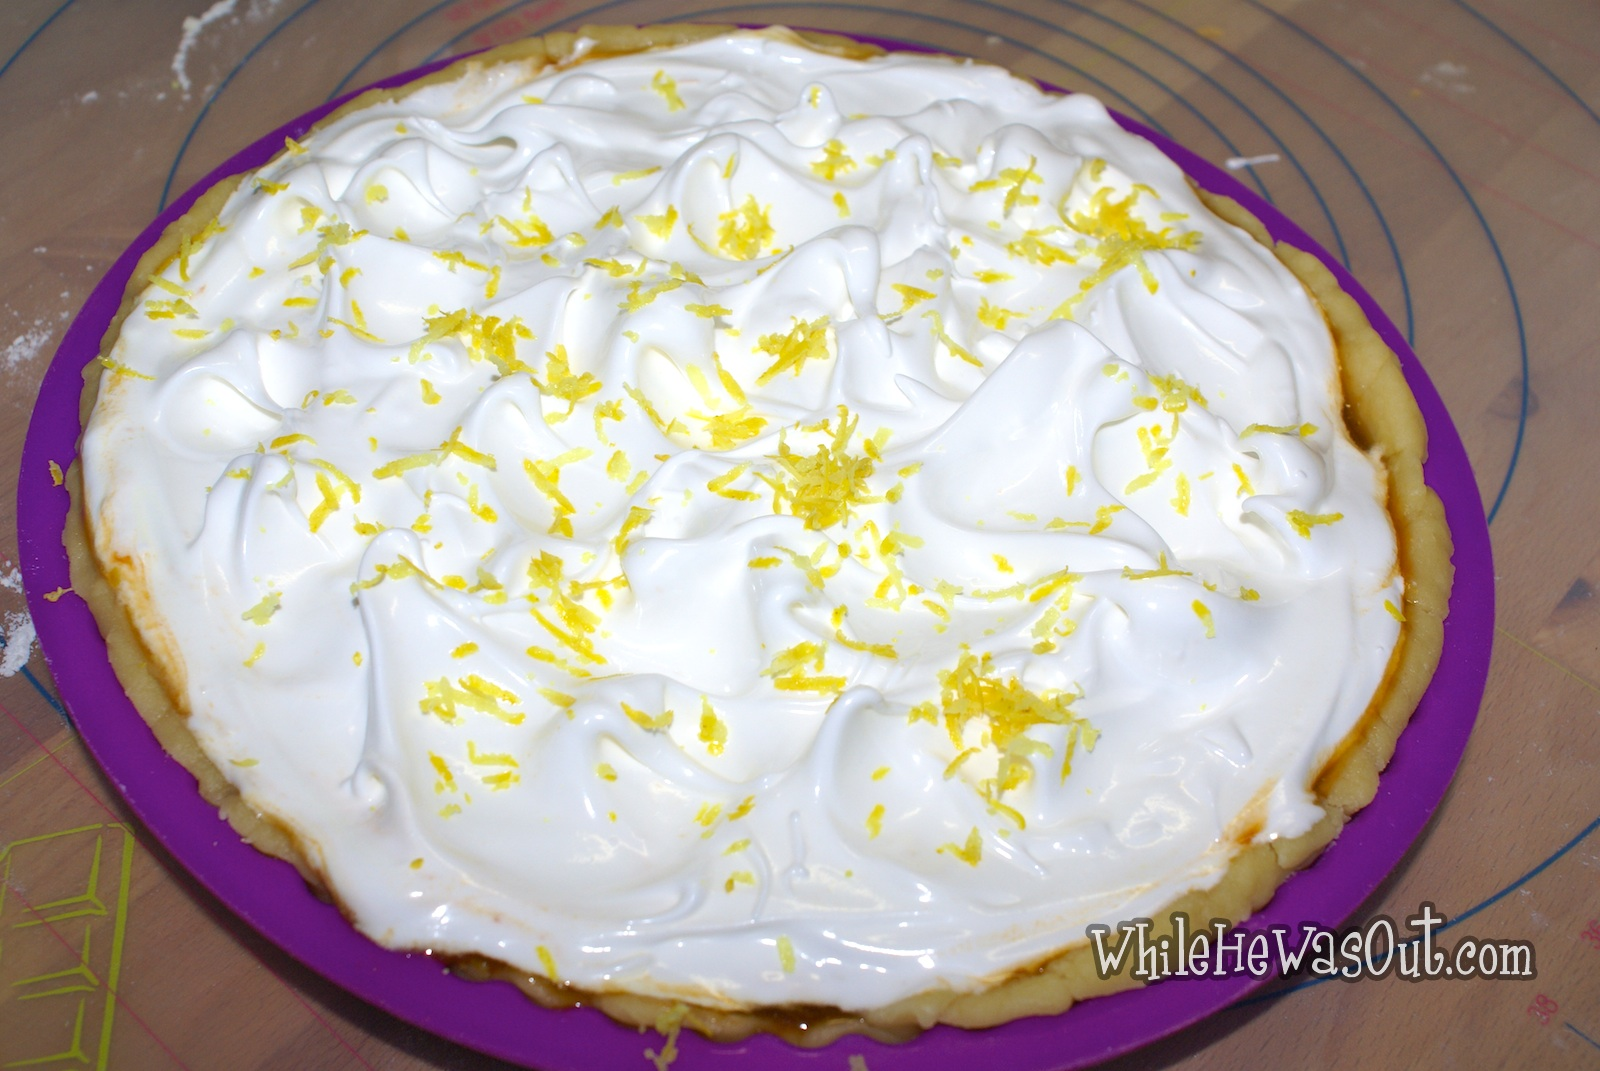 Cottage_Cheese_Apricot_Meringue_Pie 07